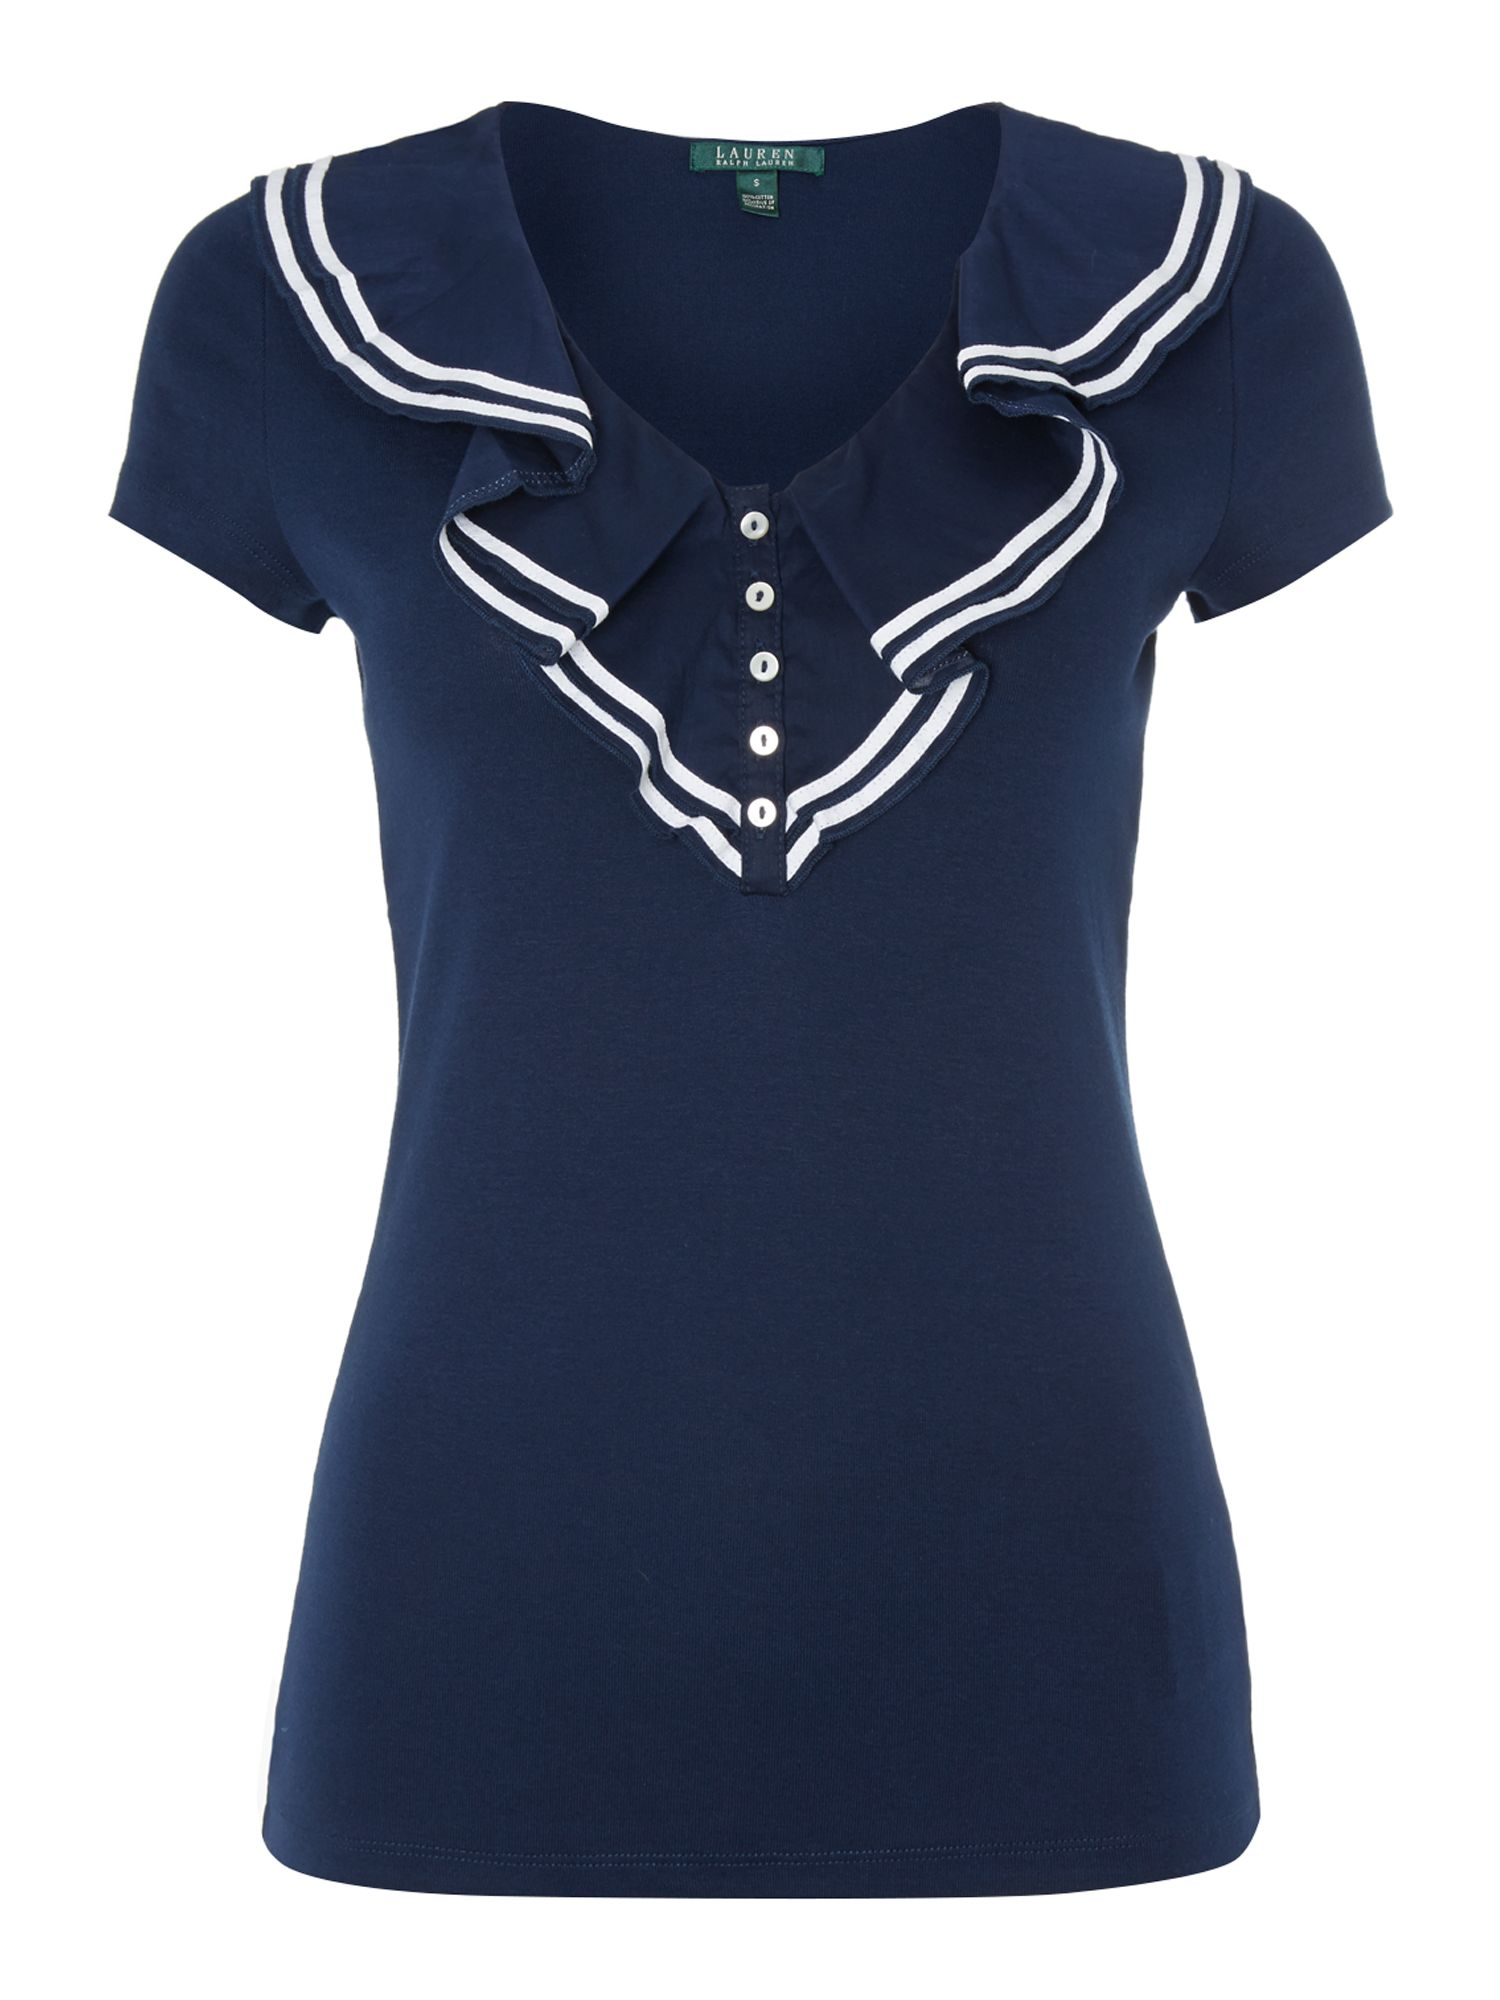 Sailor top with ruffle front